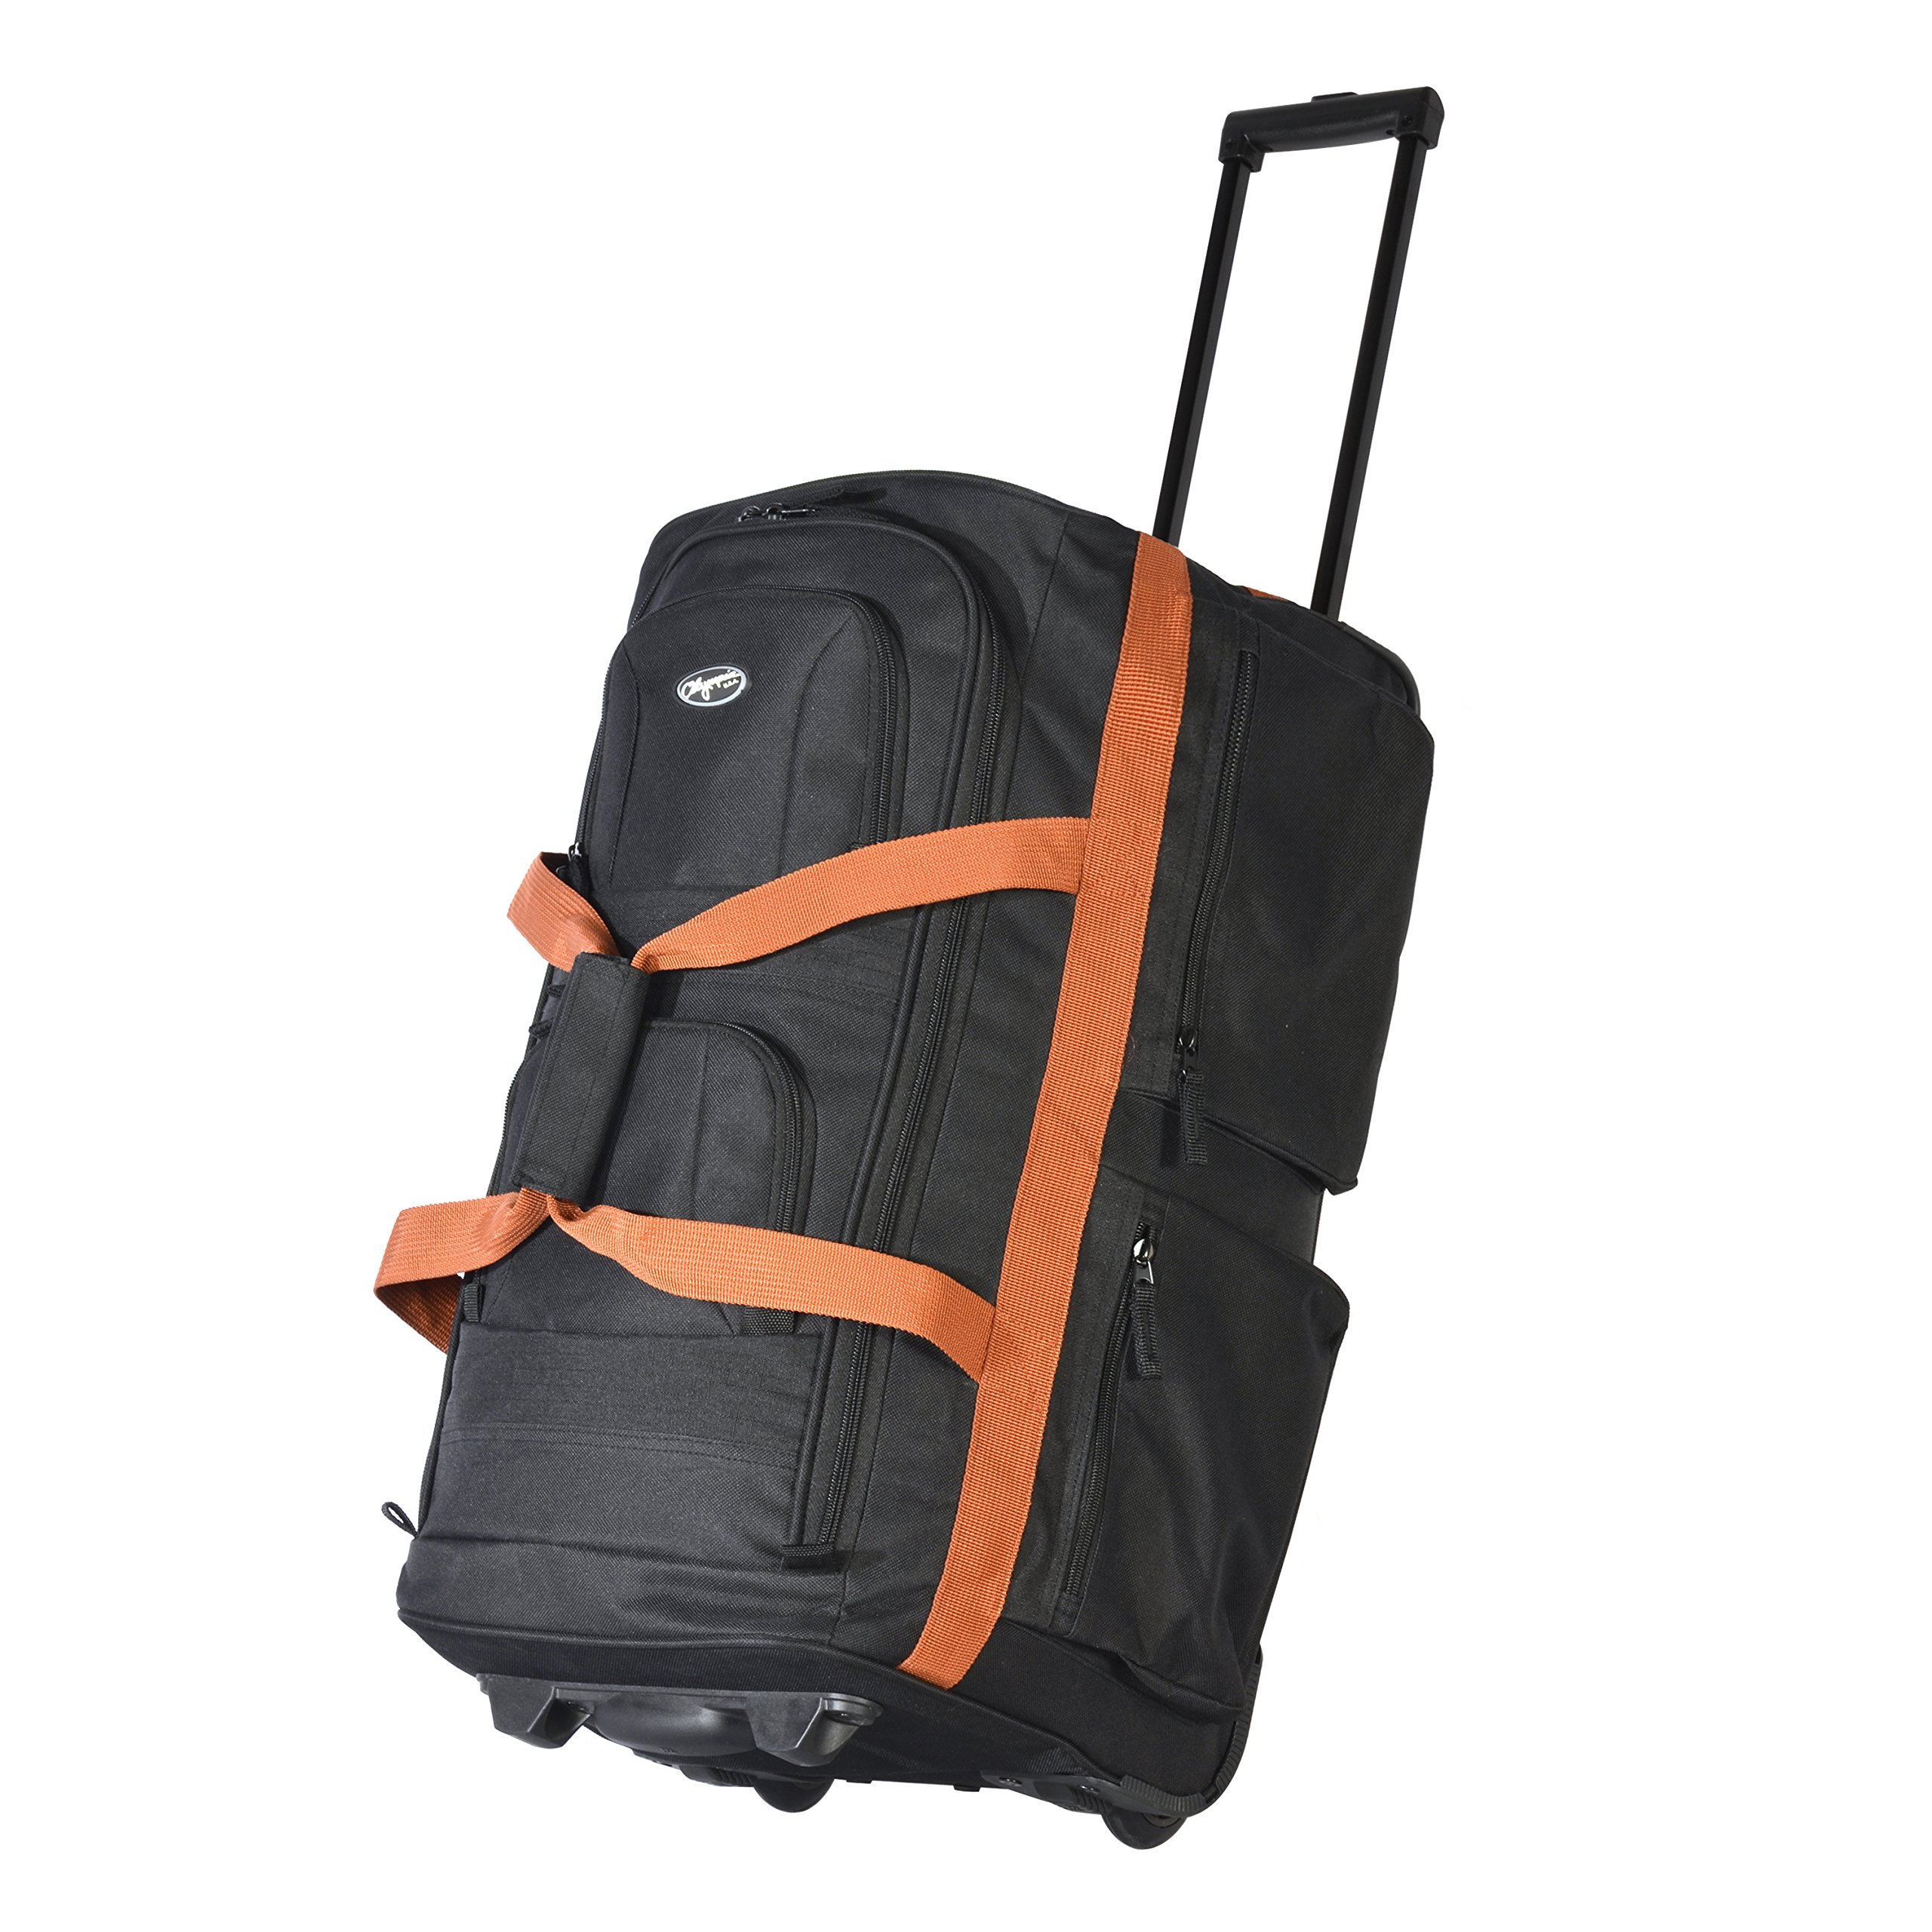 Olympia Luggage 22'' 8 Pocket Rolling Duffel Bag (Black w/Beige - Exclusive Color)